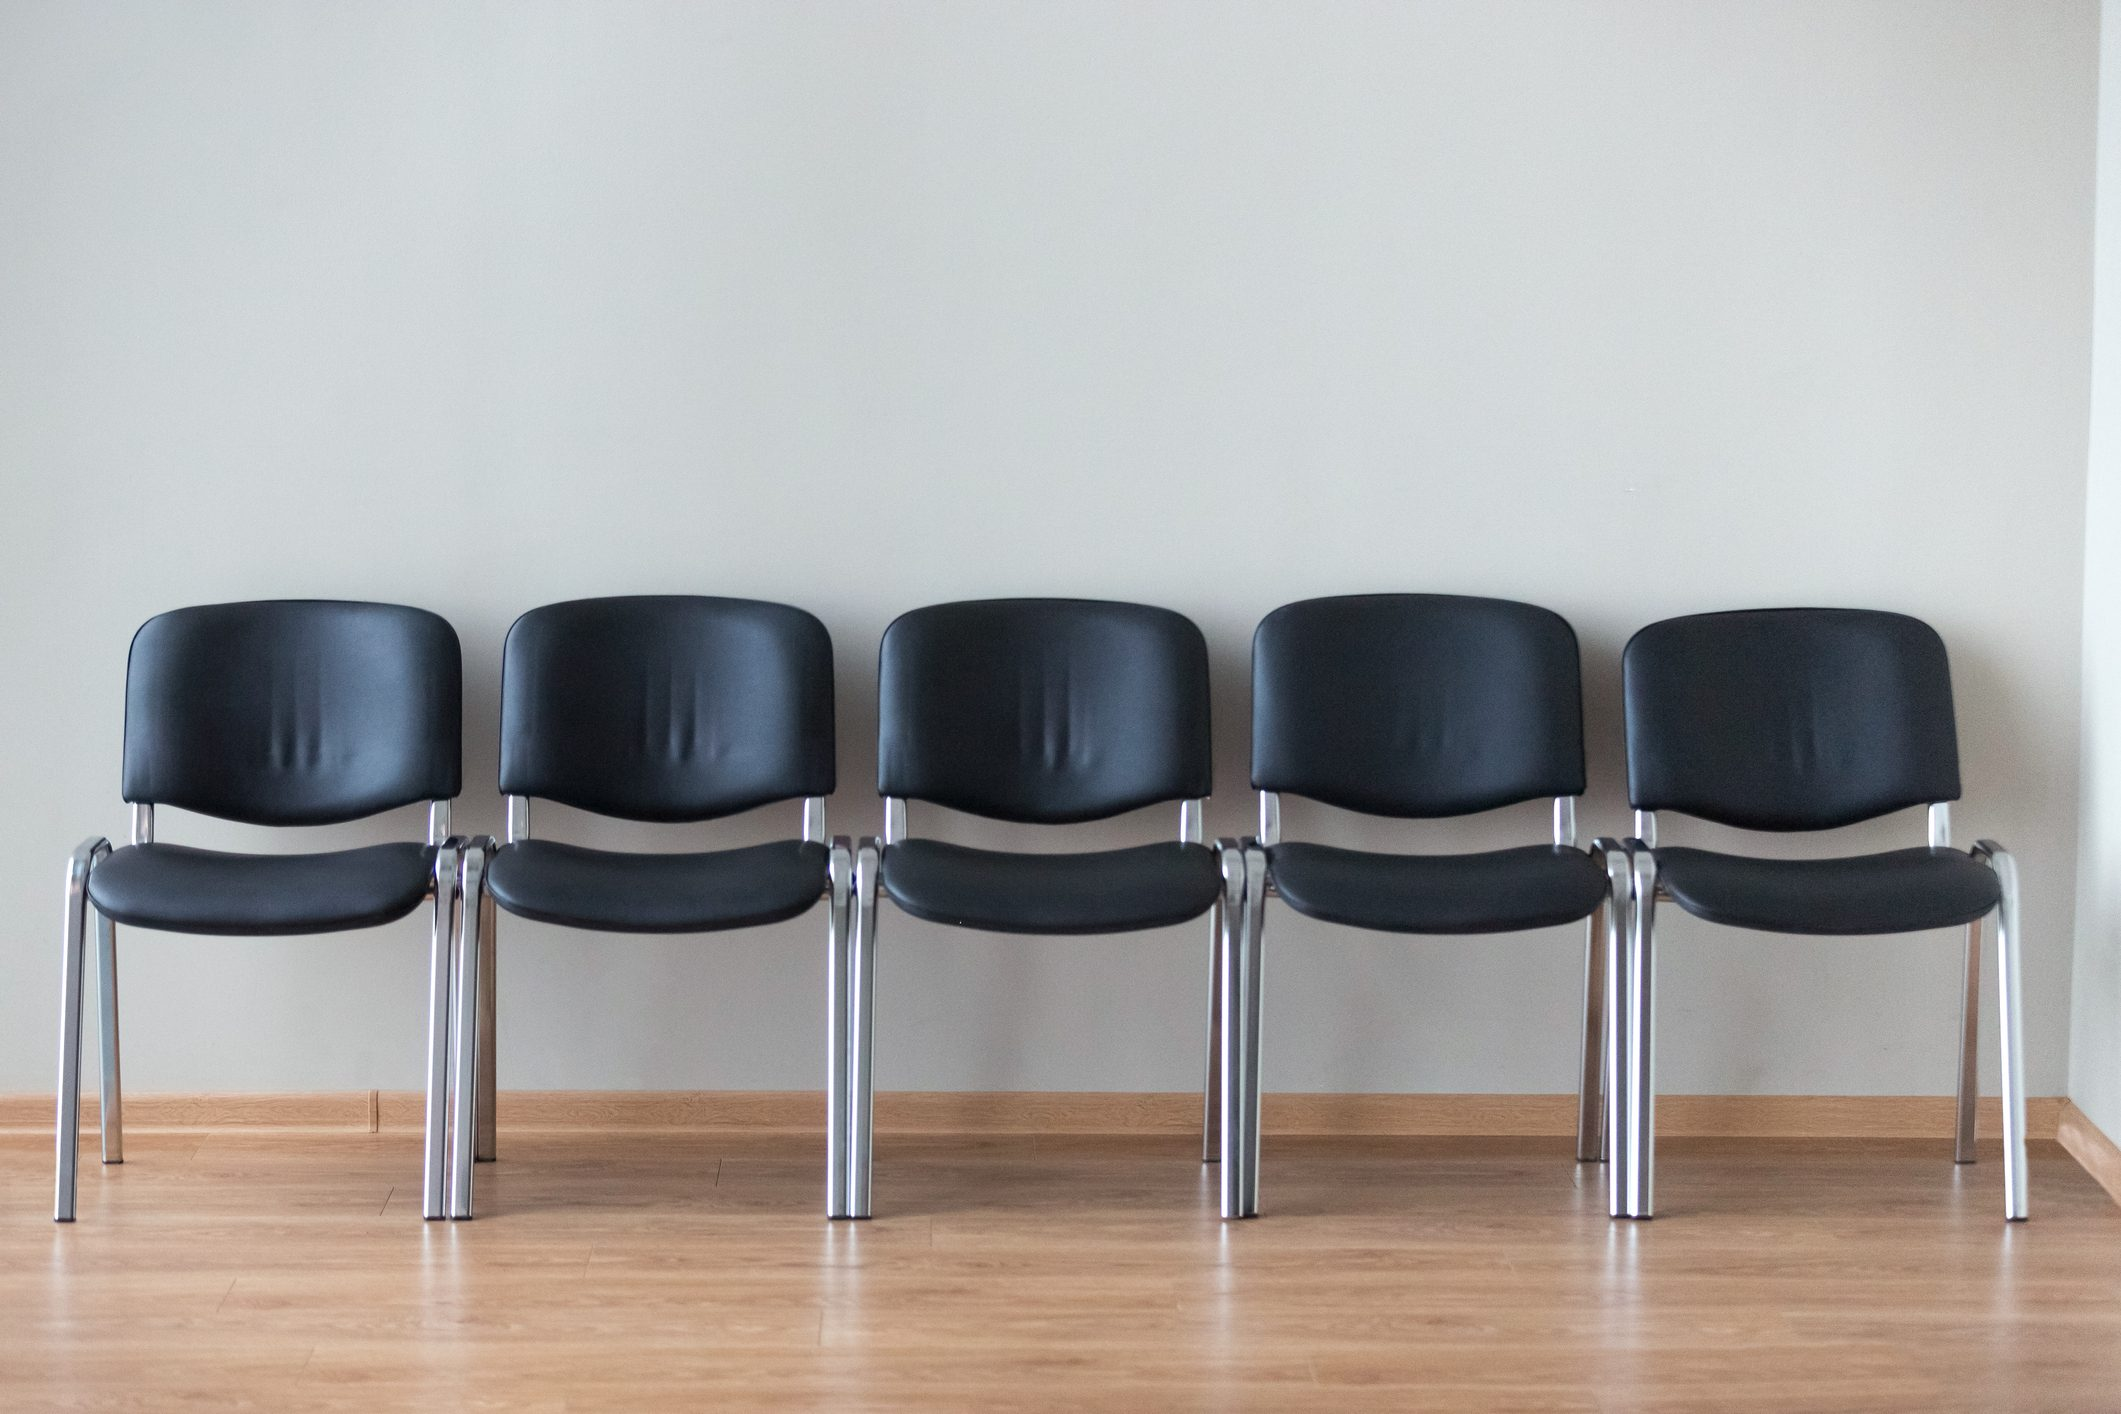 Row of black office chairs in conference room